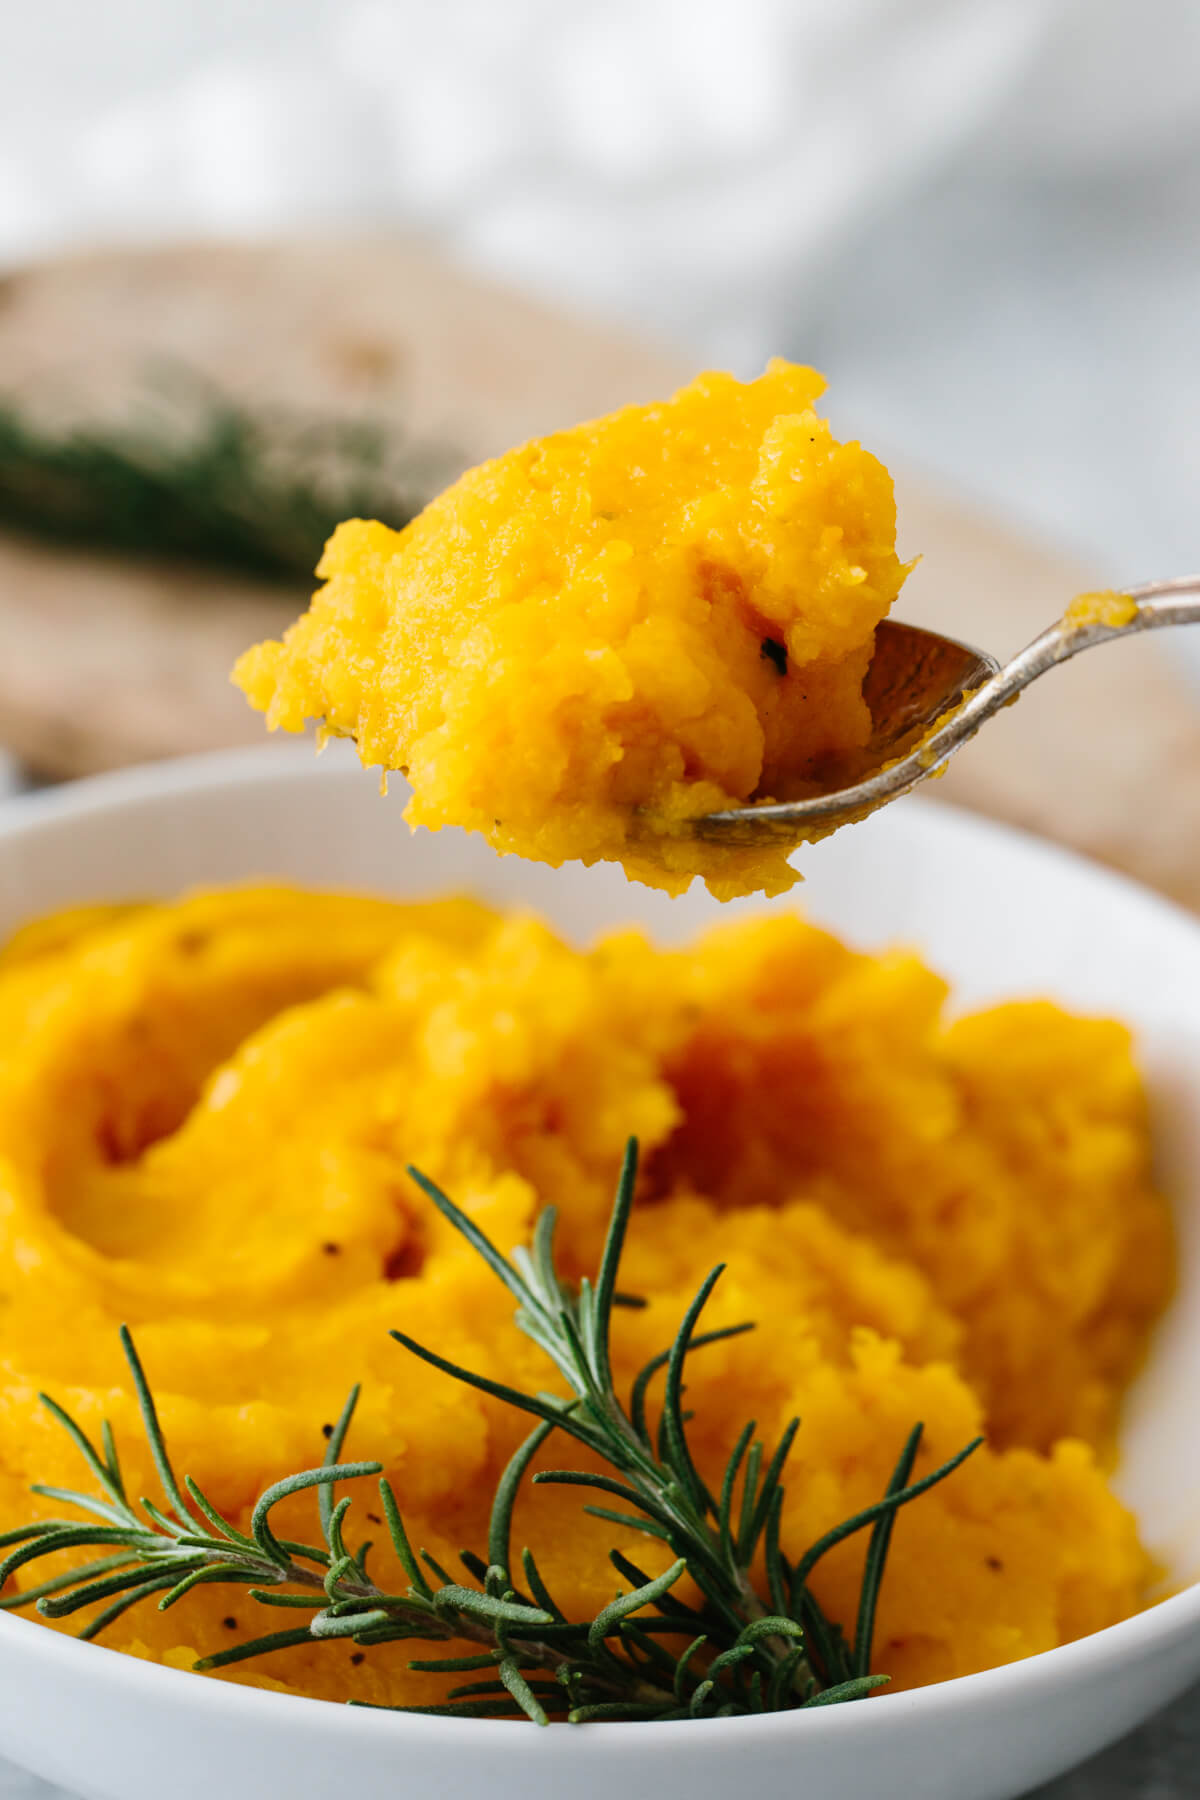 A spoonful of mashed butternut squash.